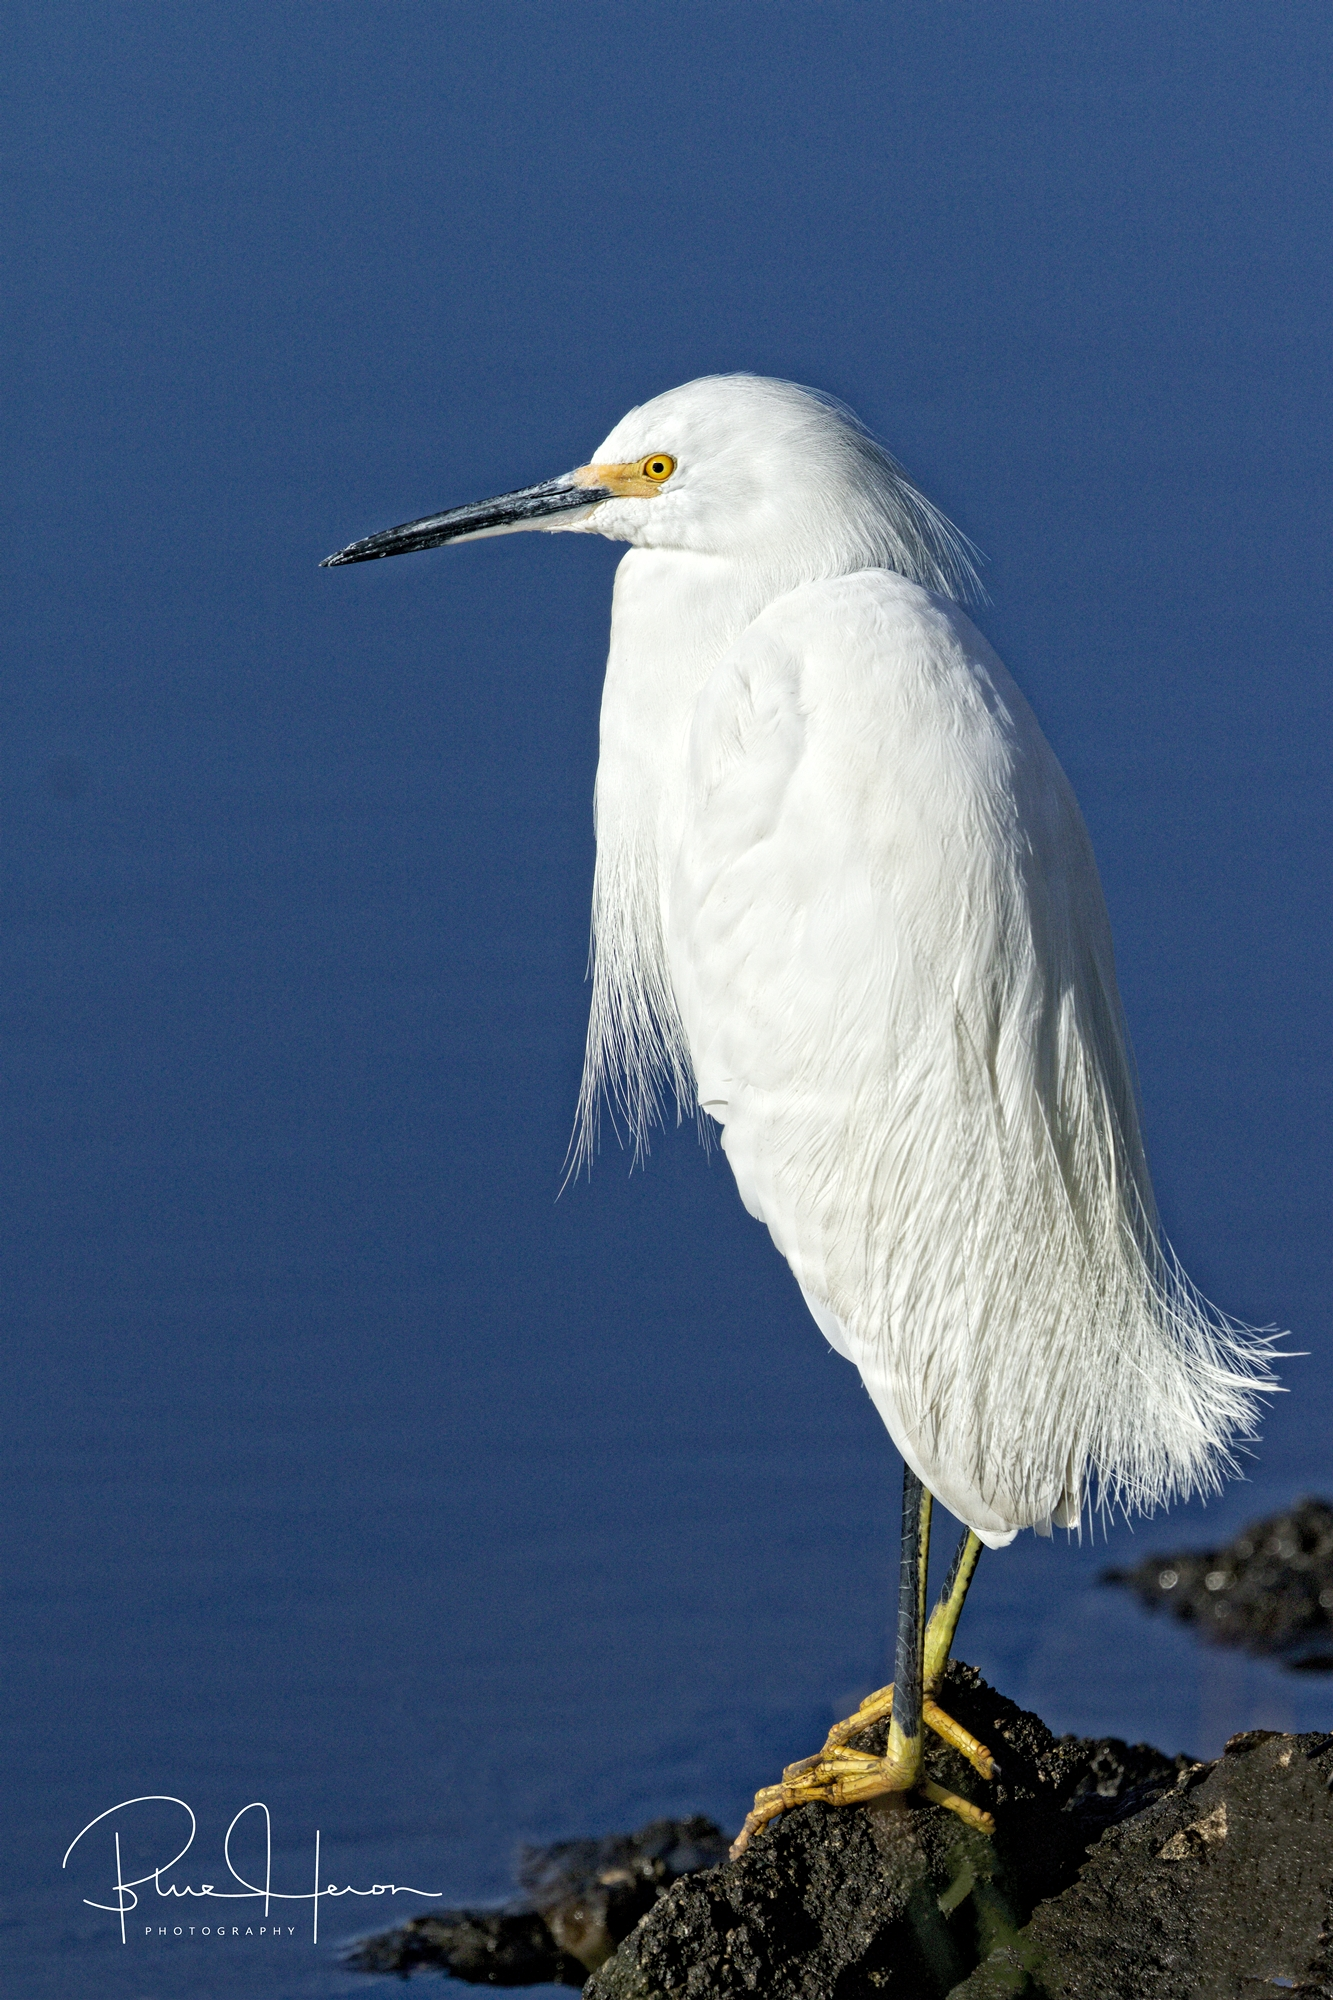 The Snowy Egret seemed frozen as snow too..